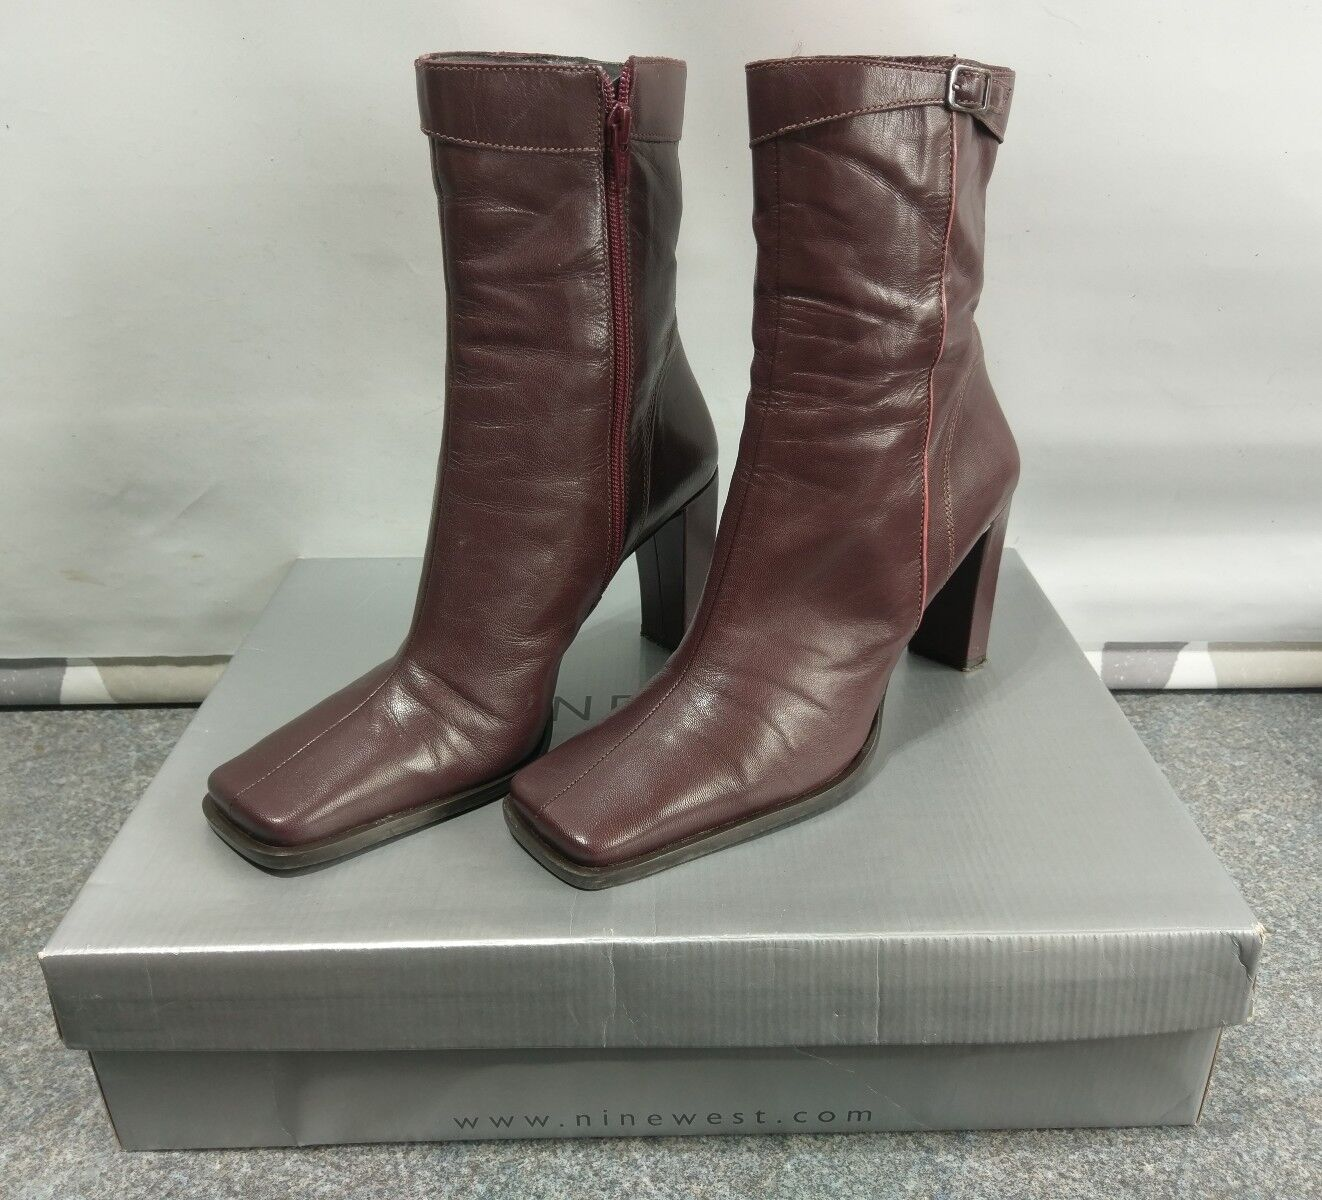 NINE WEST 'Wine' Leather High Heel Ankle Boots UK Size 7  A